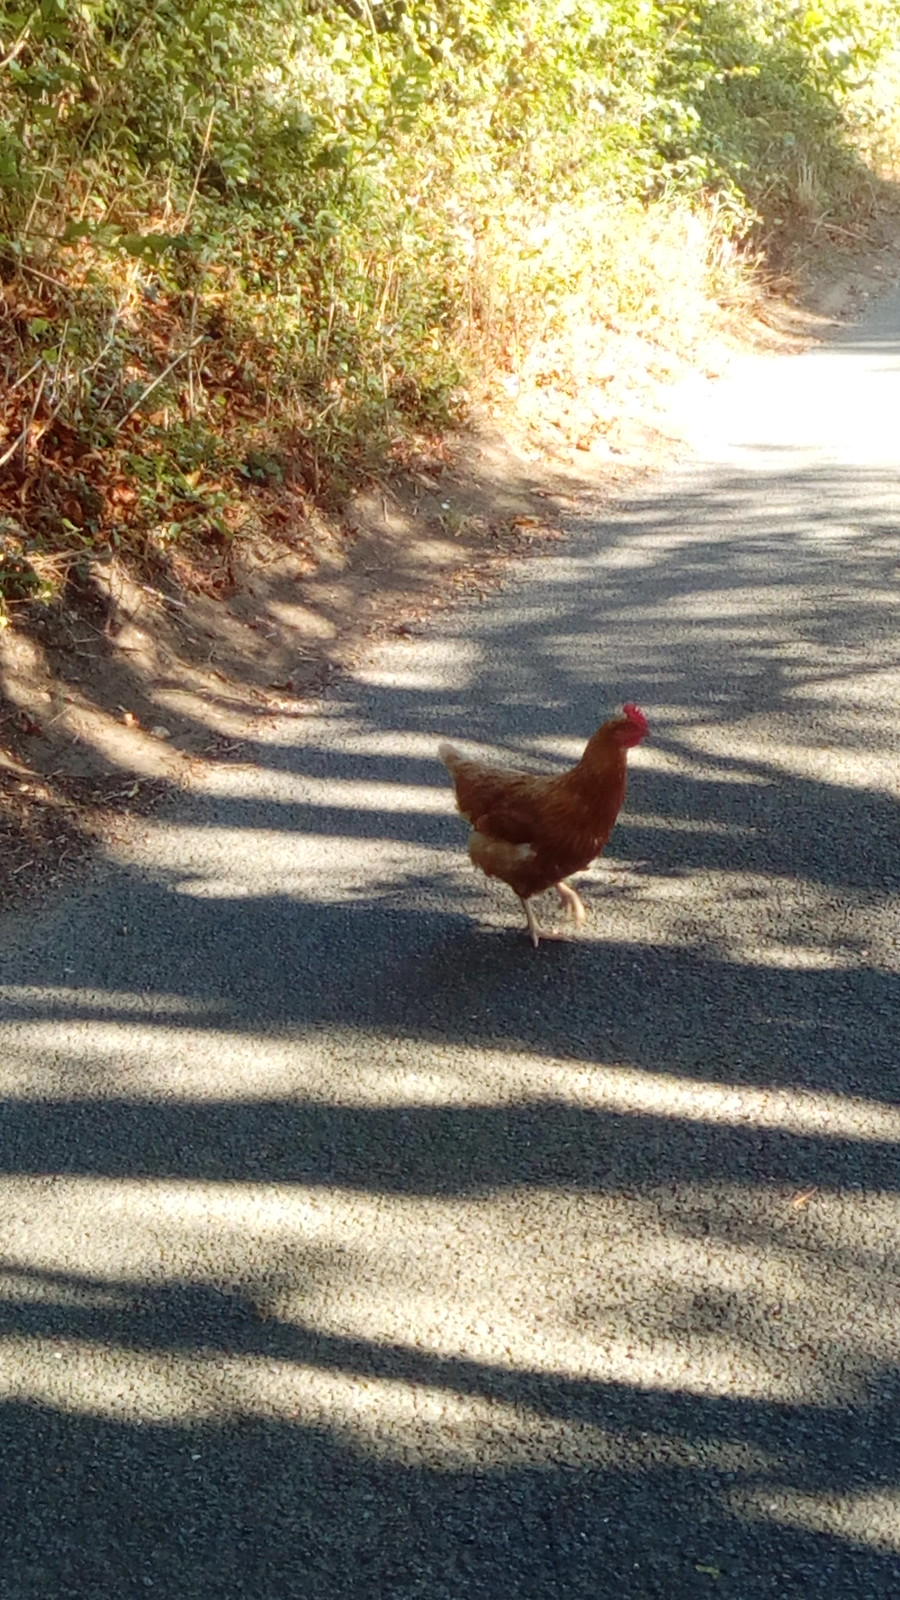 Why did the chicken cross the road? The Saturday Walking Club wants answers!